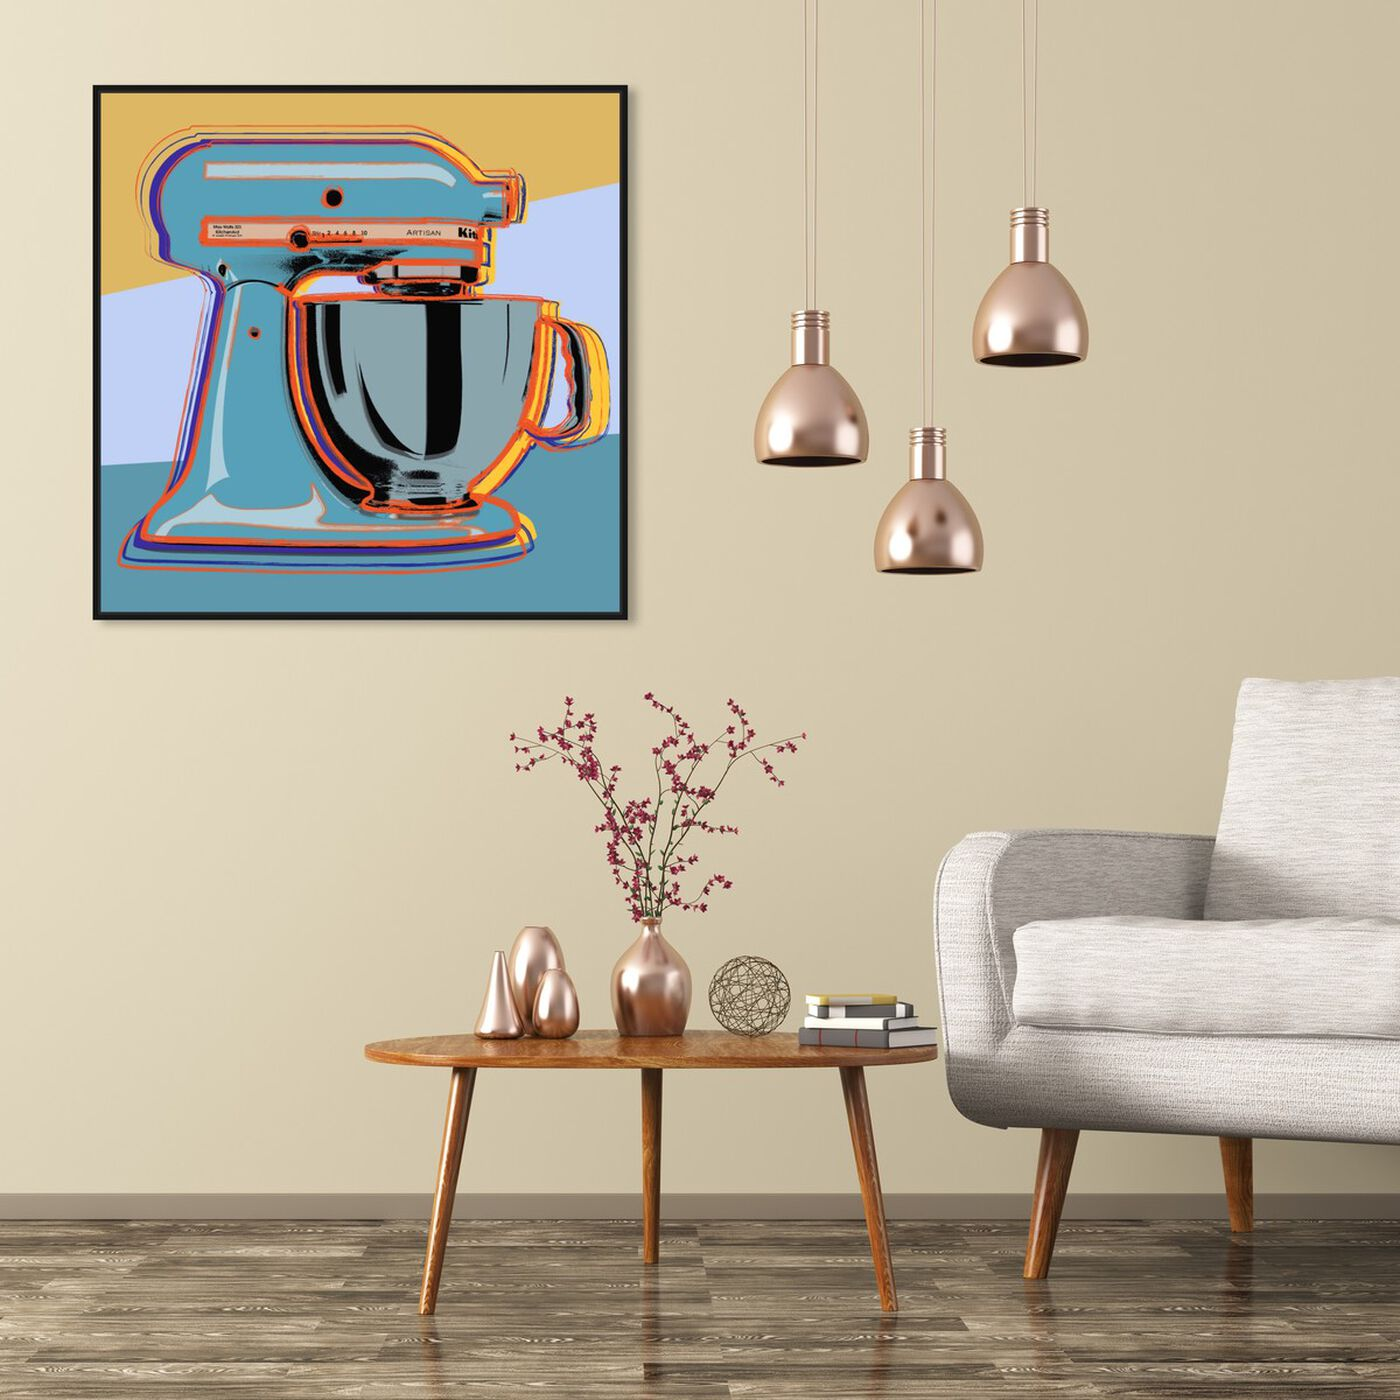 Hanging view of Classic Blender featuring food and cuisine and baking essentials art.